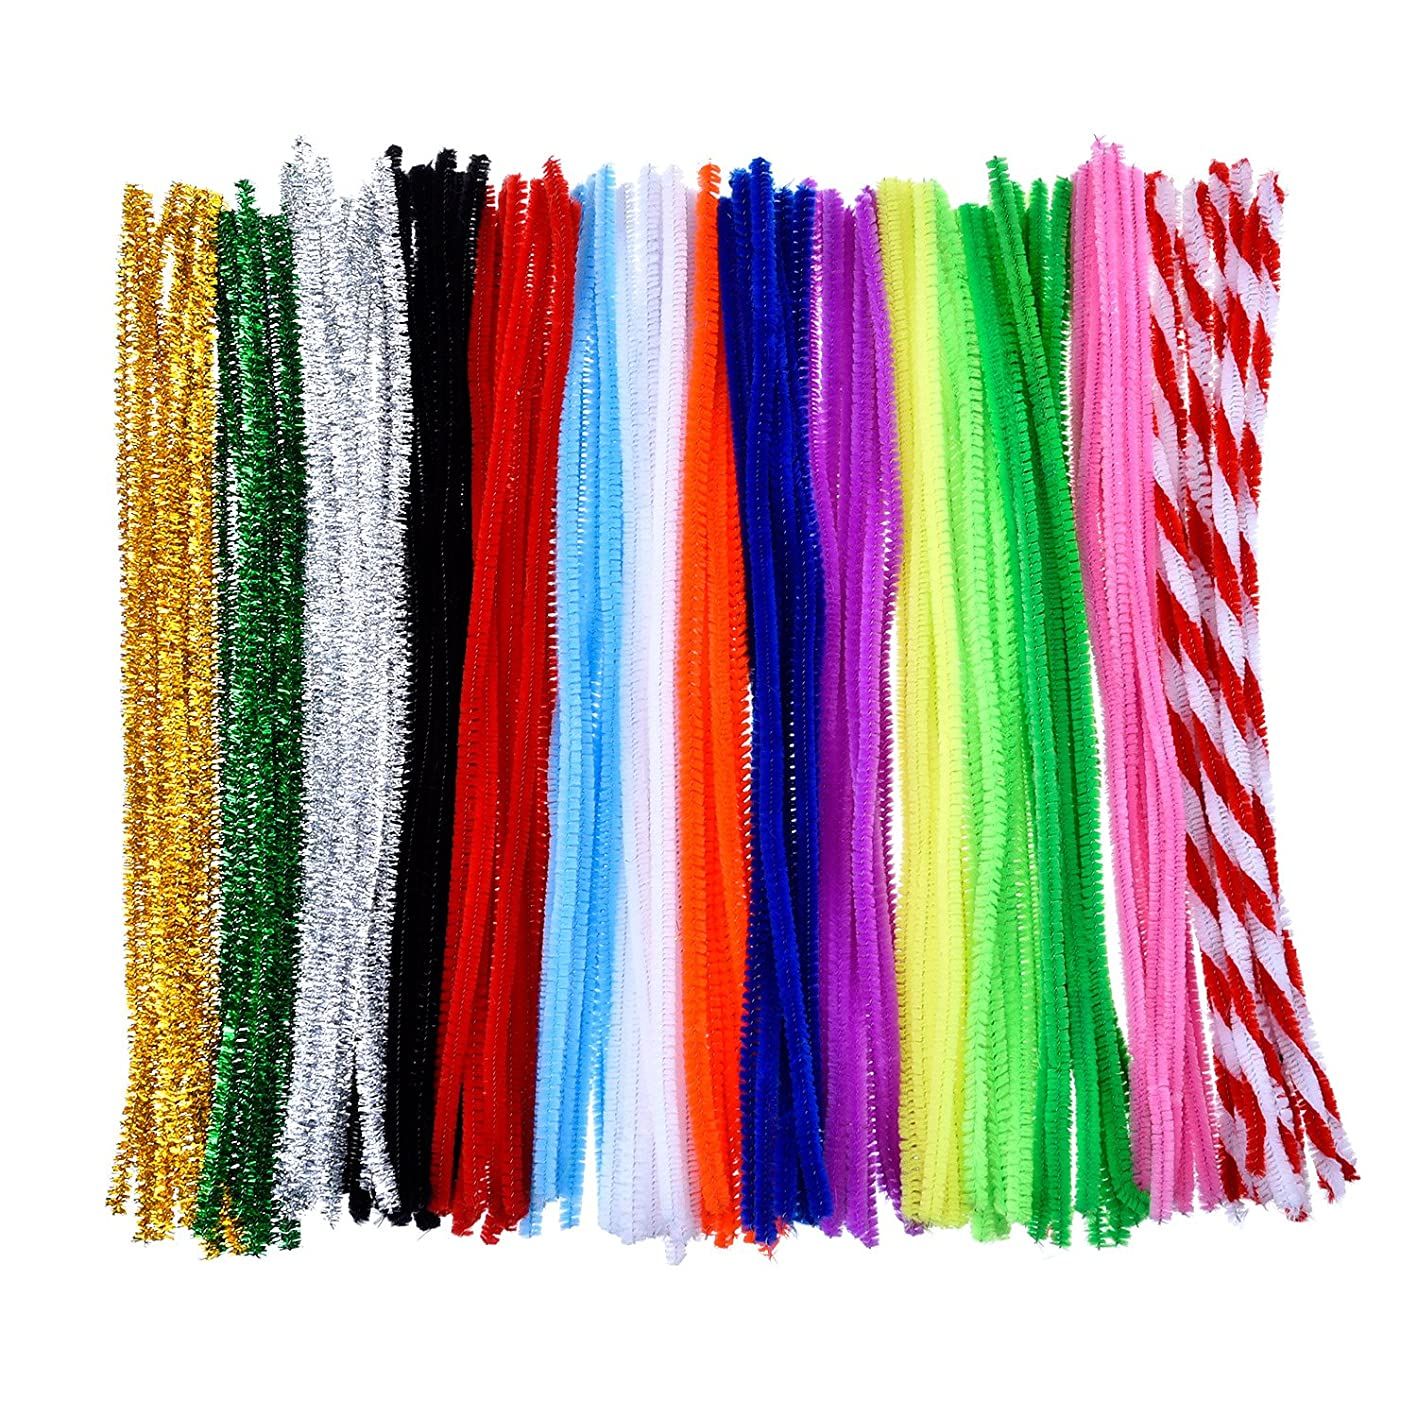 Outus 150 Pieces Pipe Cleaners Chenille Stem Art Craft Pipe Cleaners, 6 by 300 mm, 15 Colors jjraplzvisy426